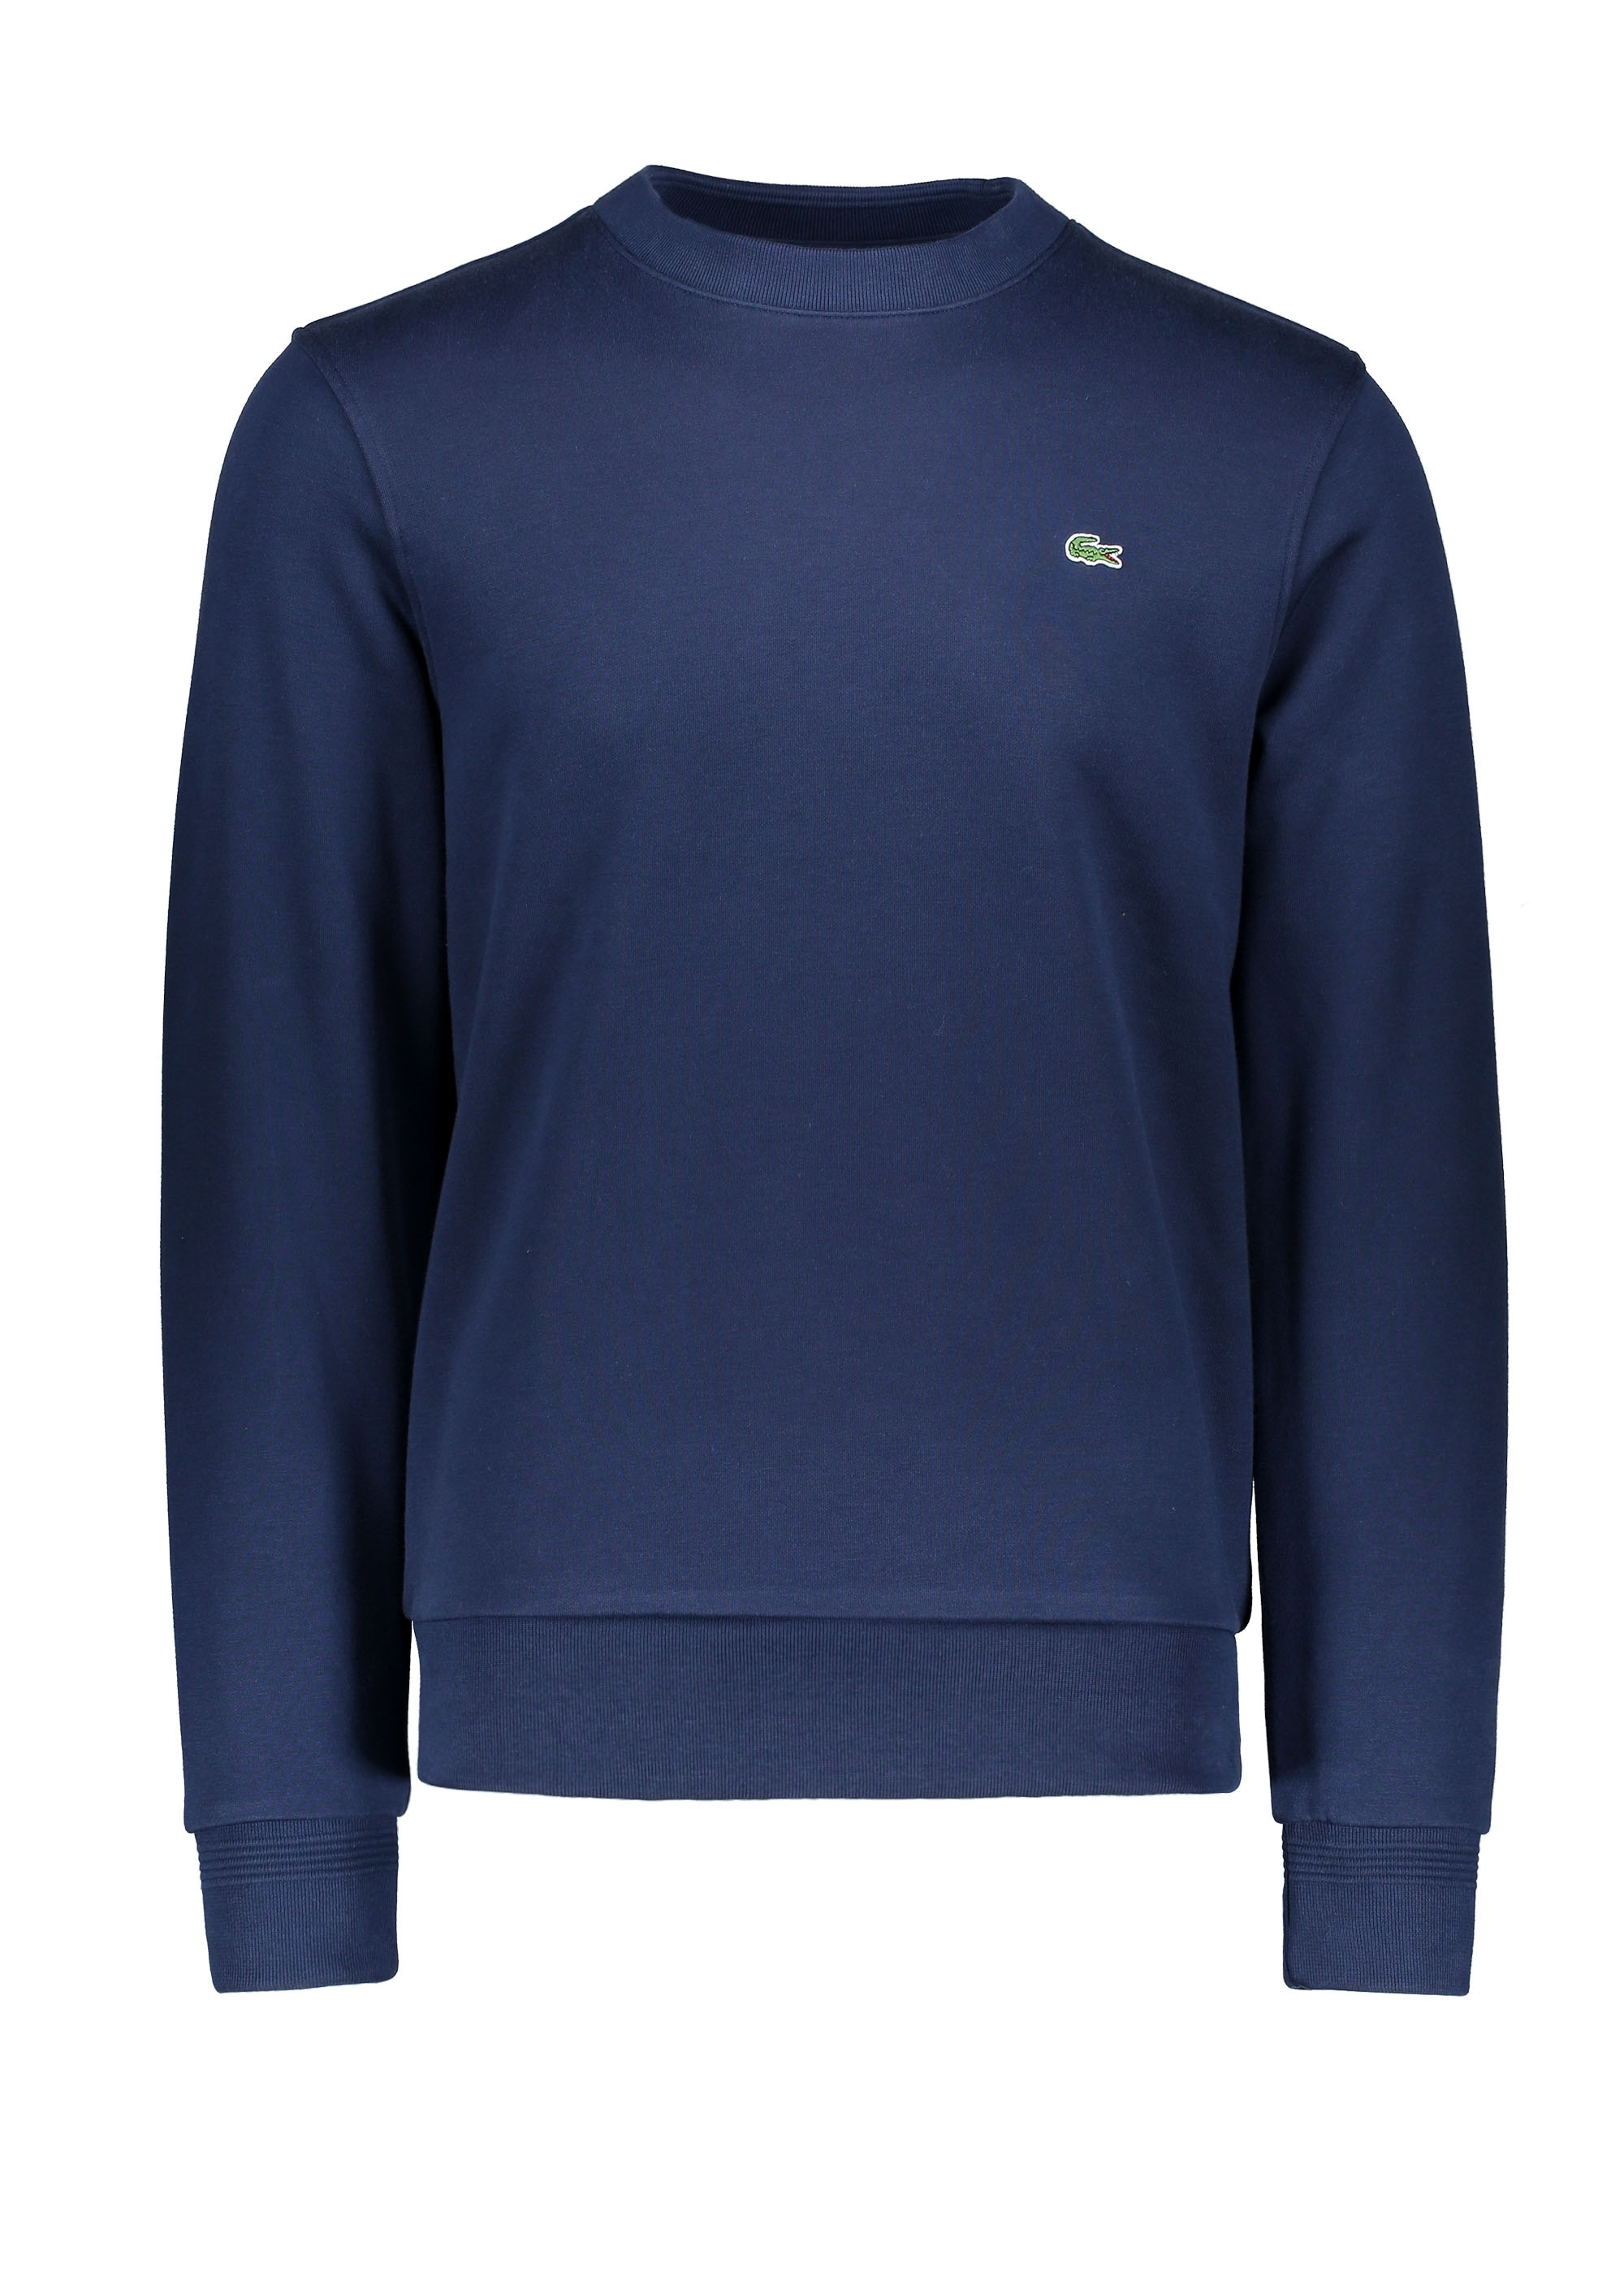 f4ca2fec Lacoste Logo Sweater - Navy Blue - Triads Mens from Triads UK